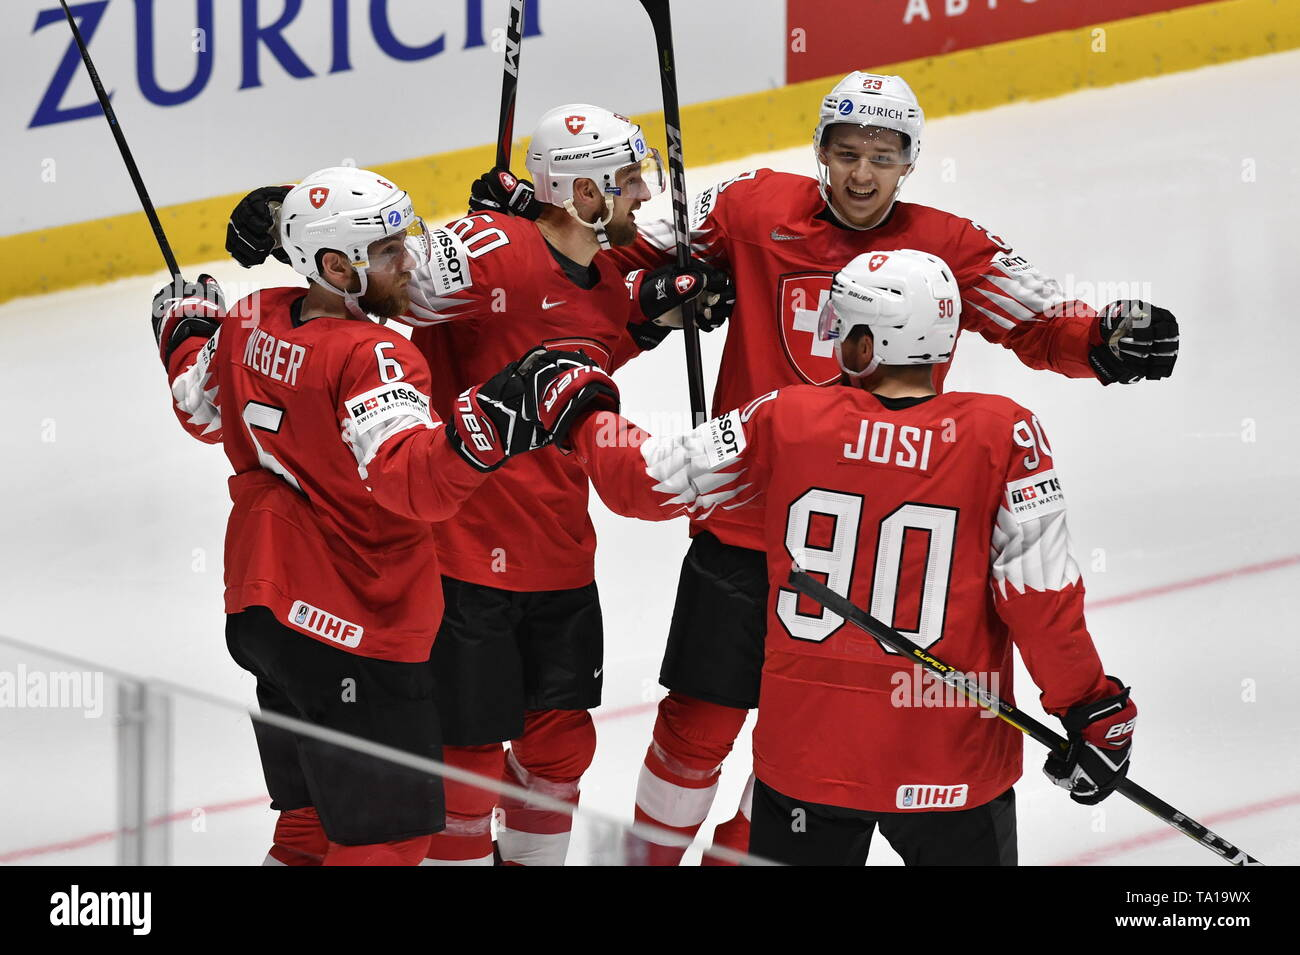 L-R Yannick Weber, Tristan Scherwey, Philipp Kurashev and Roman Josi (all SUI) celebrate Scherwey's goal during the match between Czech Republic and Switzerland within the 2019 IIHF World Championship in Bratislava, Slovakia, on May 21, 2019. (CTK Photo/Vit Simanek) Stock Photo